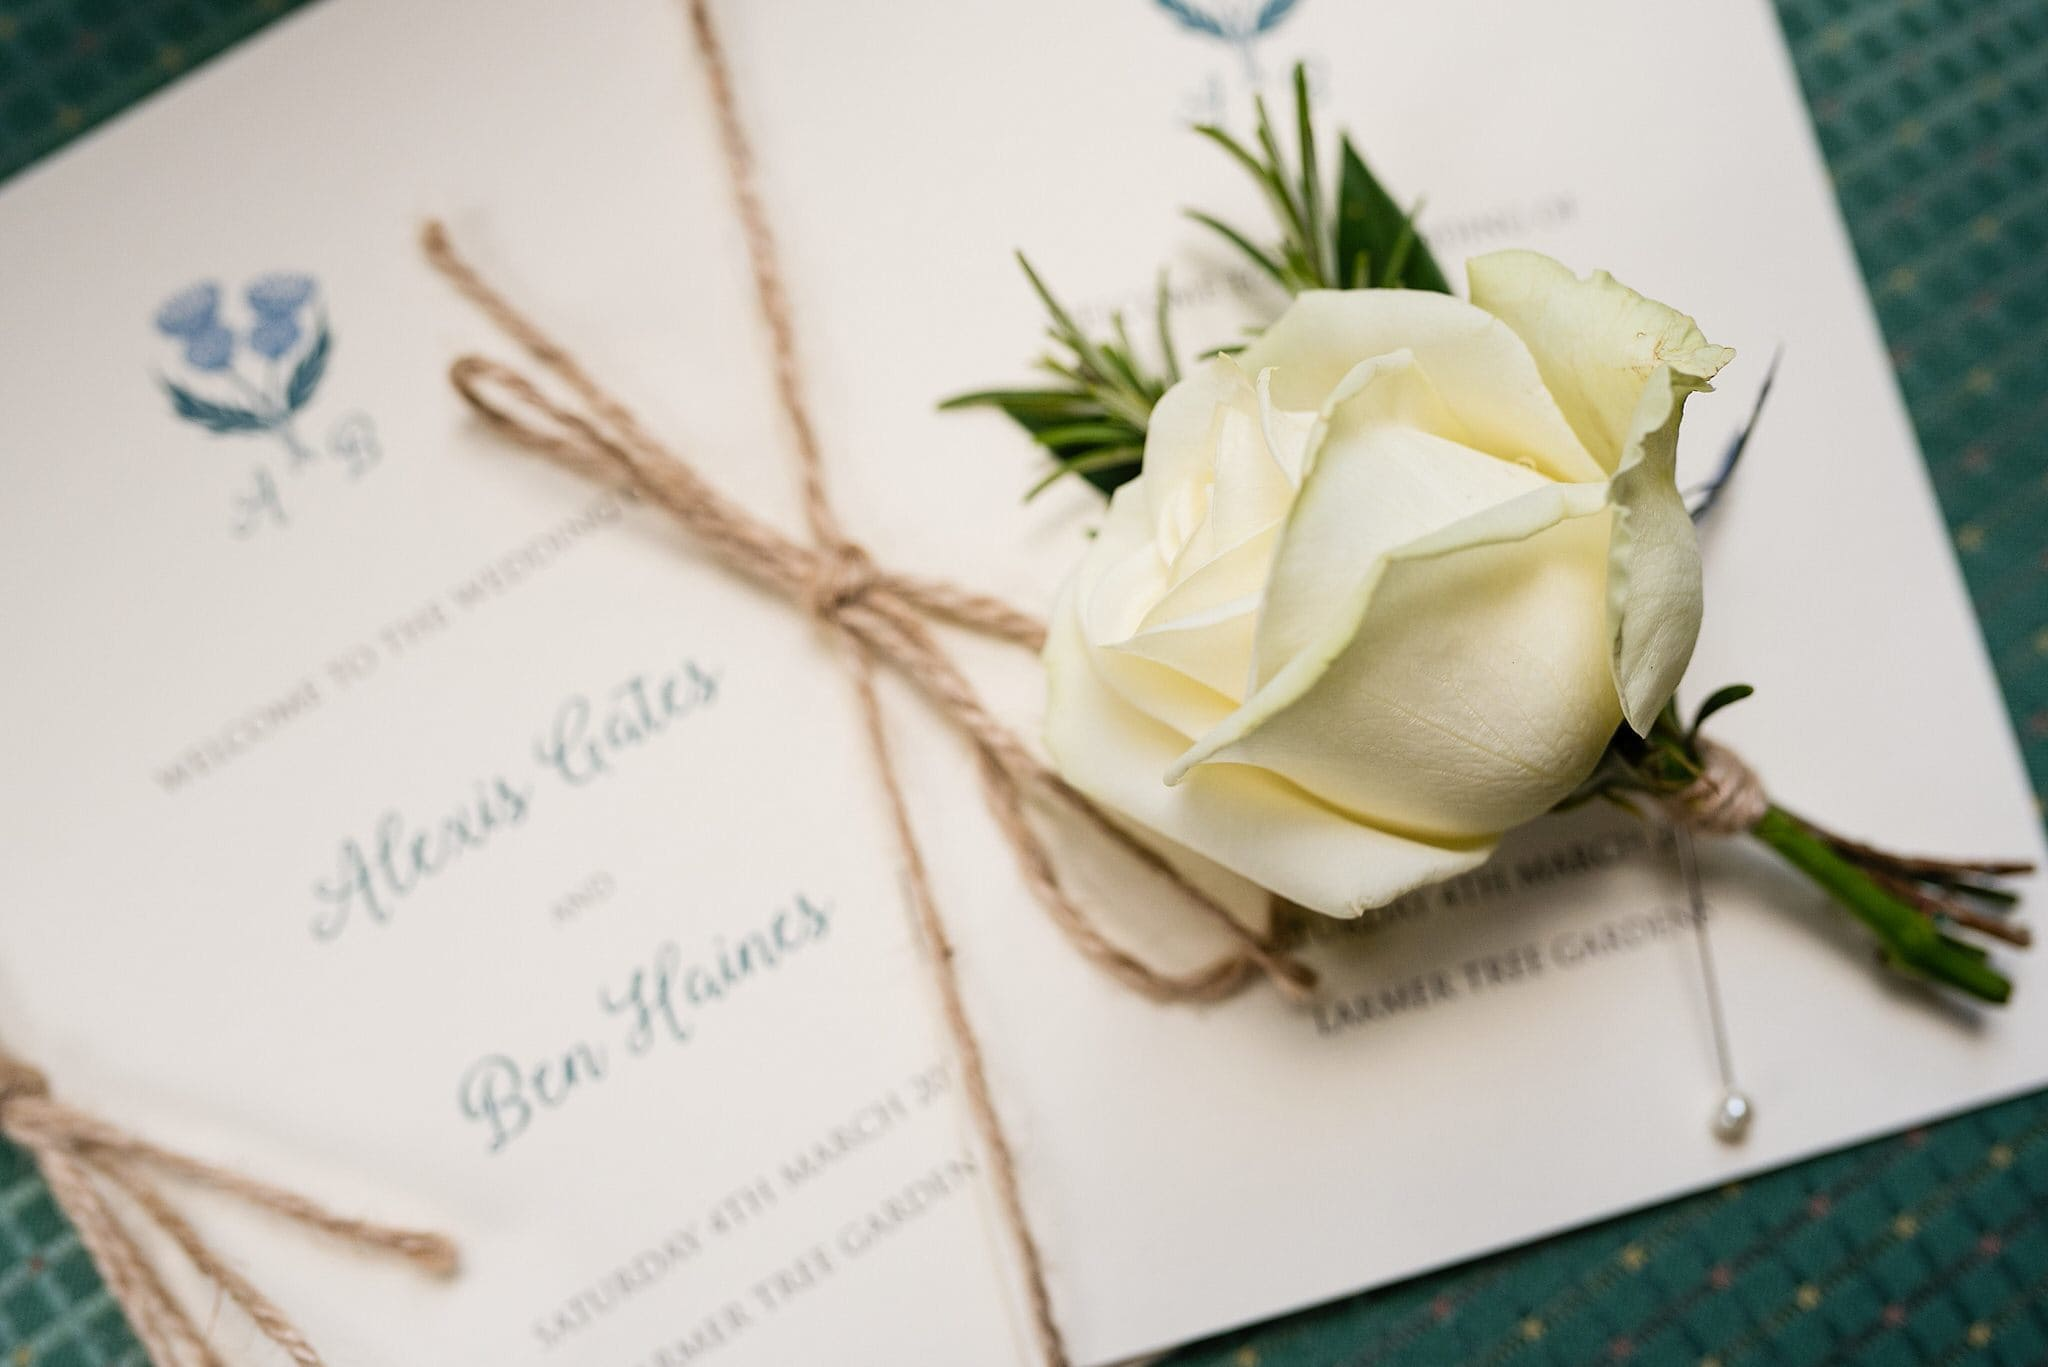 Rose rests on the wedding stationery